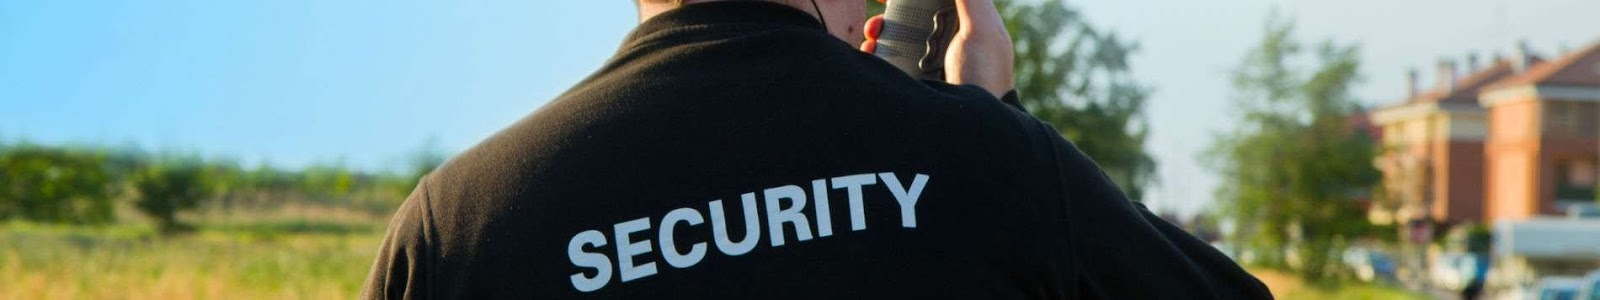 a security guard wearing a jacket that says security talking into a walkie talkie